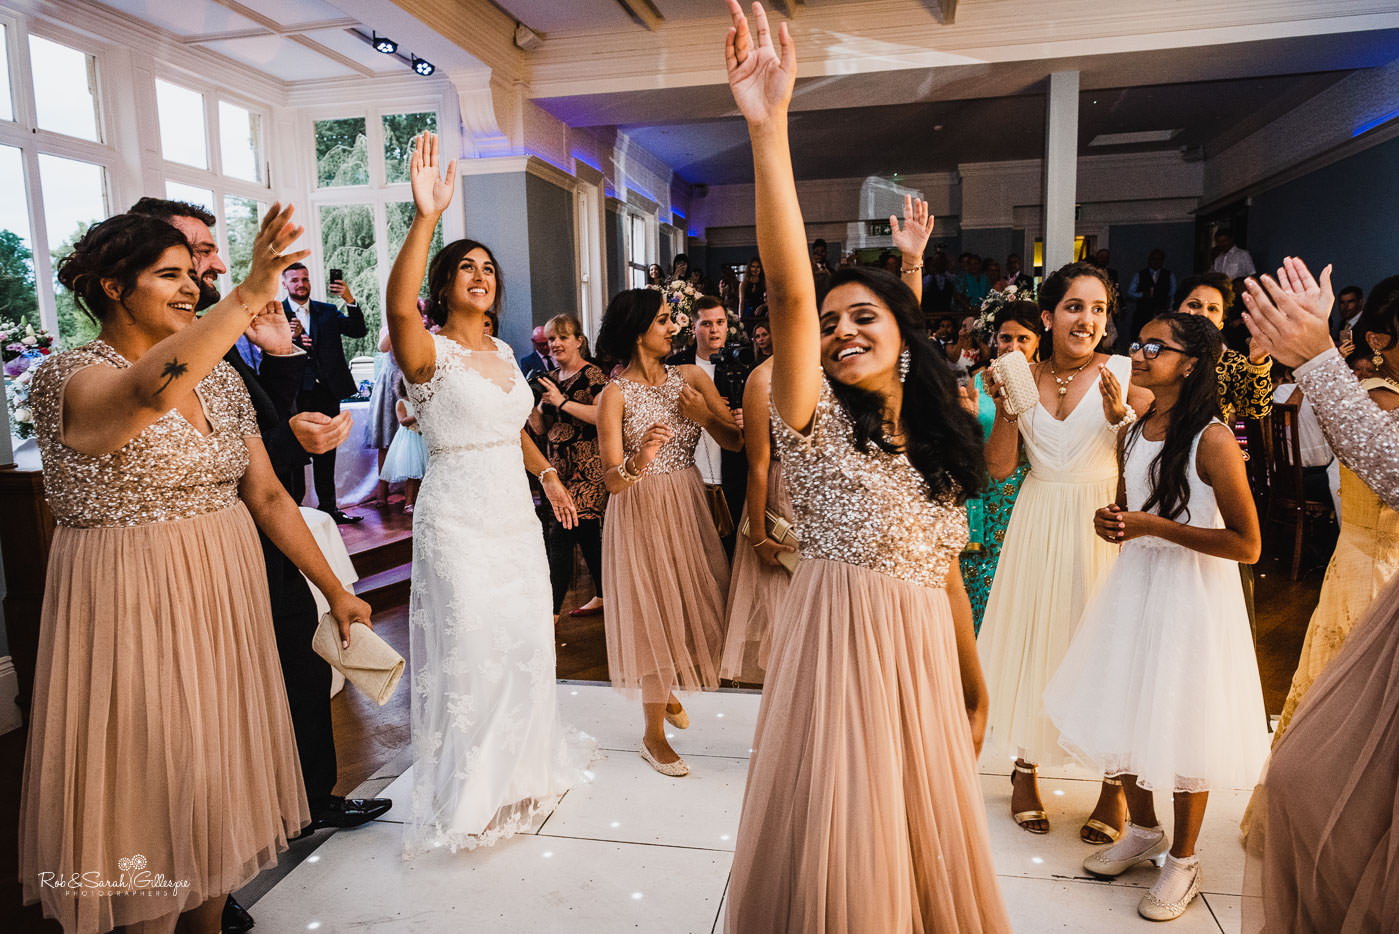 Bride and guests dancing at Pendrell Hall fusion wedding